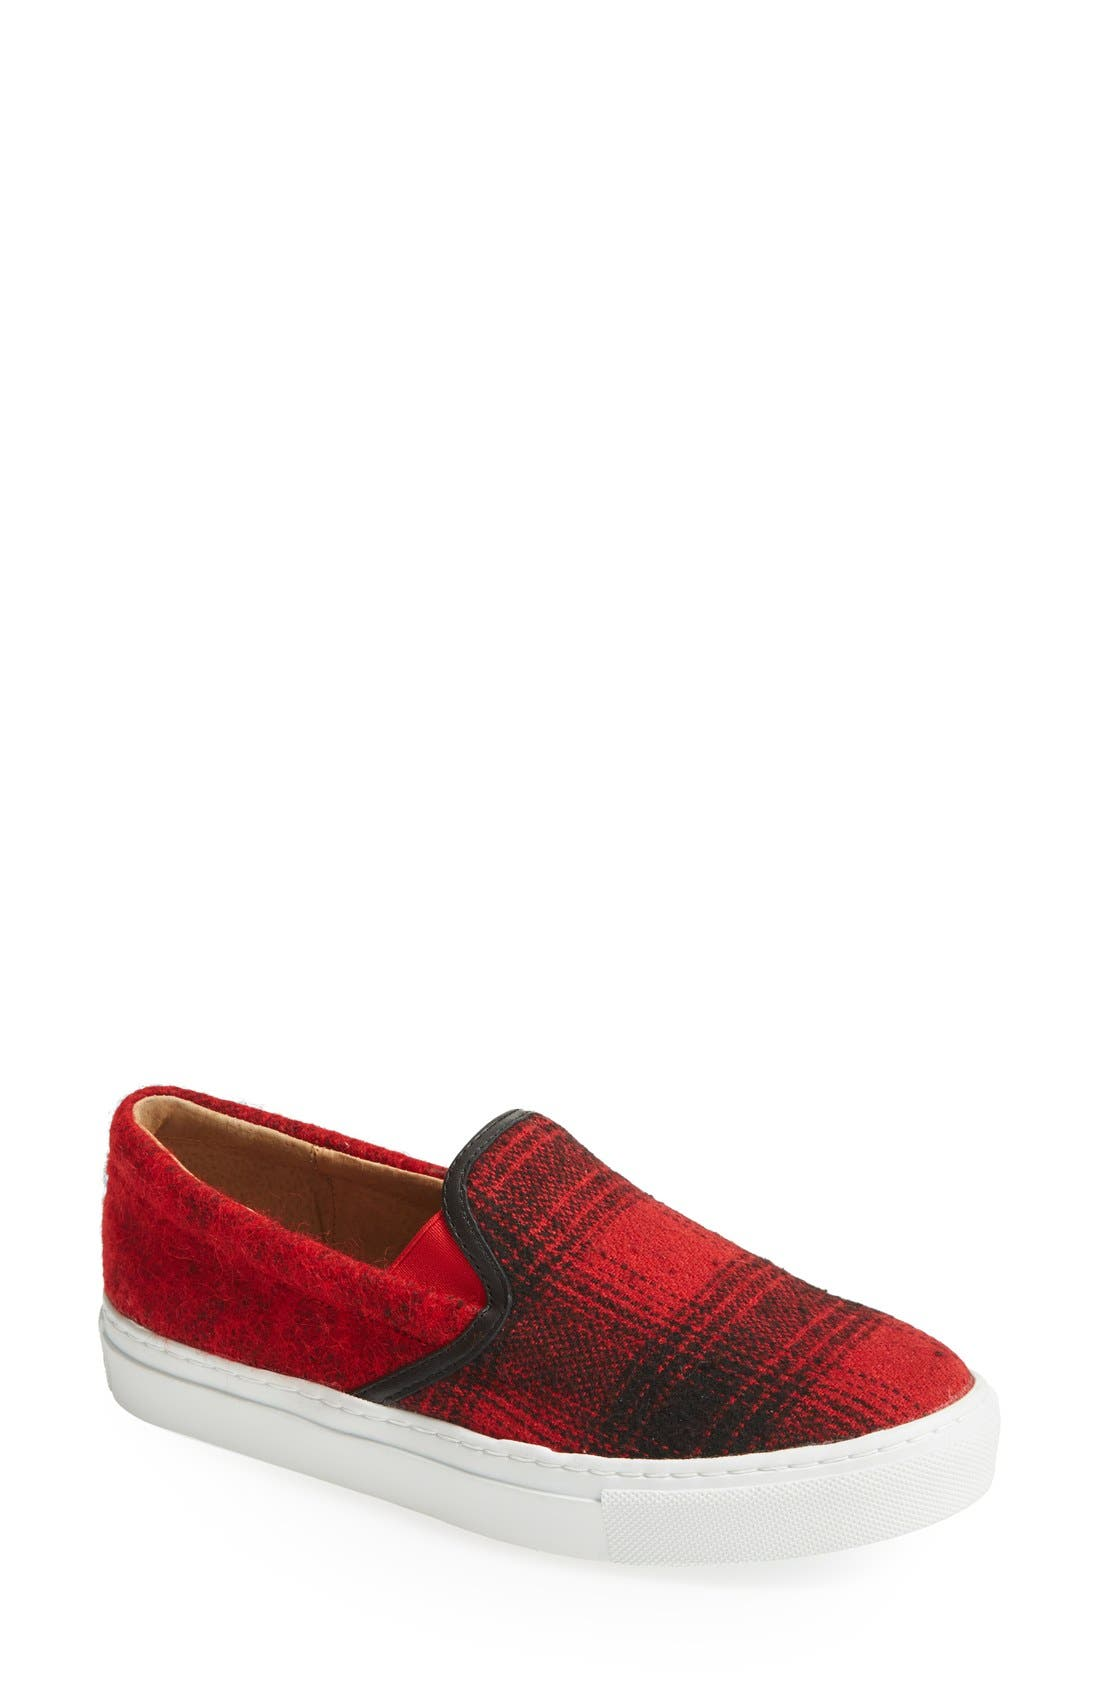 Main Image - Bettye by Bettye Muller 'Bentley' Slip-On Sneaker (Women)